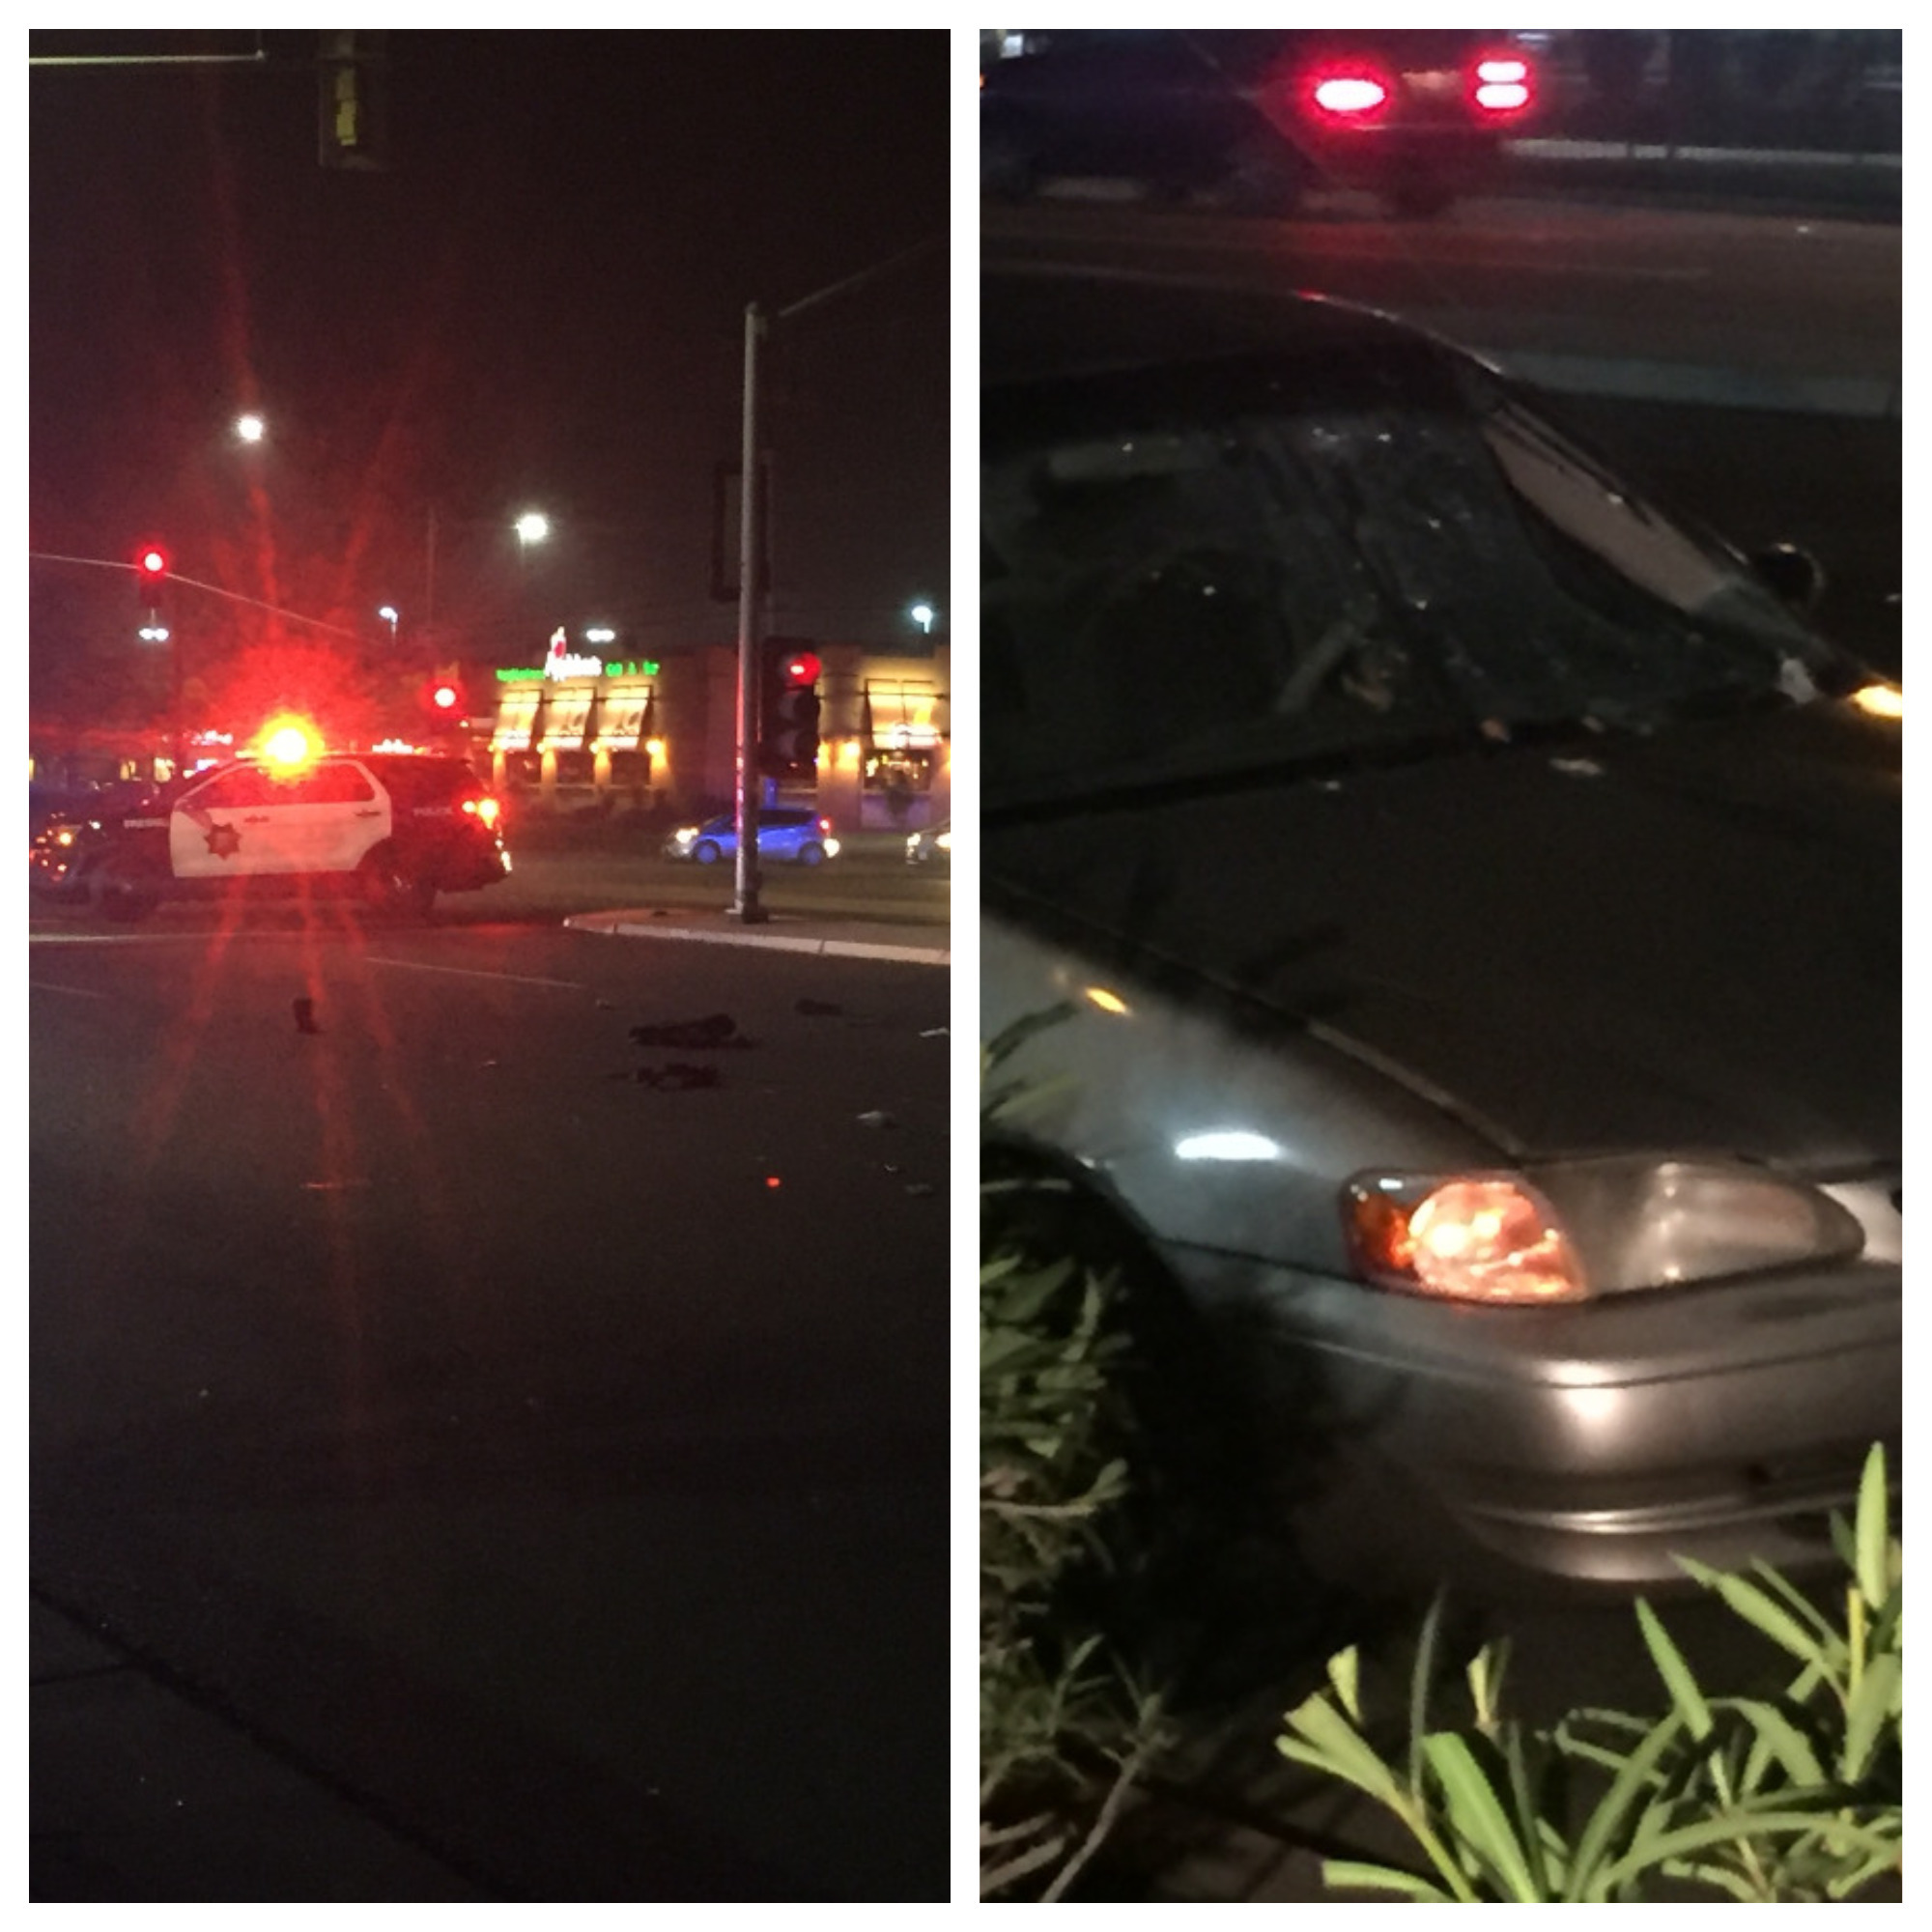 <p>Fresno P.D. is investigating an auto-pedestrian crash in Northeast Fresno. It happened just before 8:00 p.m. Friday near the intersection of Cedar and Herndon</p>